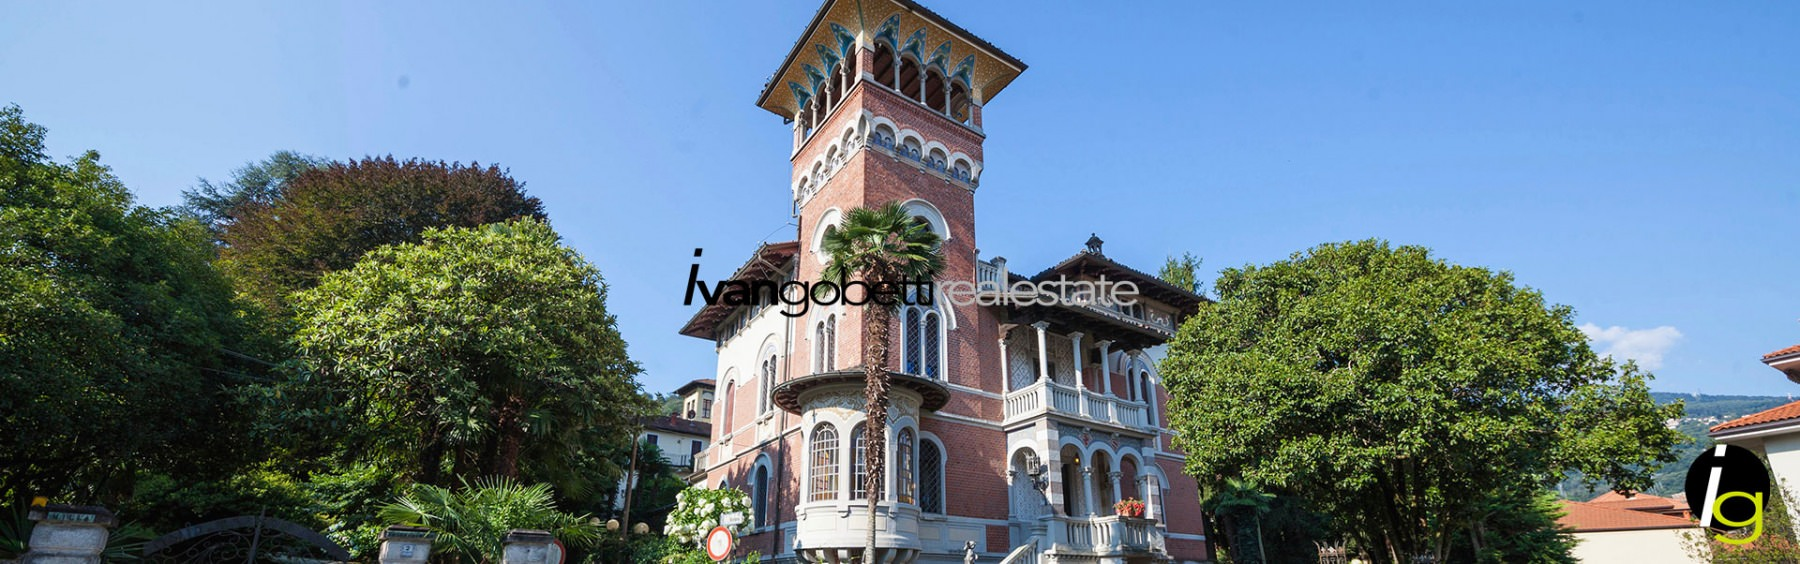 Vintage villa in the late medieval style for sale in Stresa on Lake Maggiore &nbsp; &nbsp; &nbsp; &nbsp;<span>Product code : 462<br/>This marvellous vintage villa was built at the end of the 19th century in a late Medieval style. The villa is situated in the city &nbsp;[...]